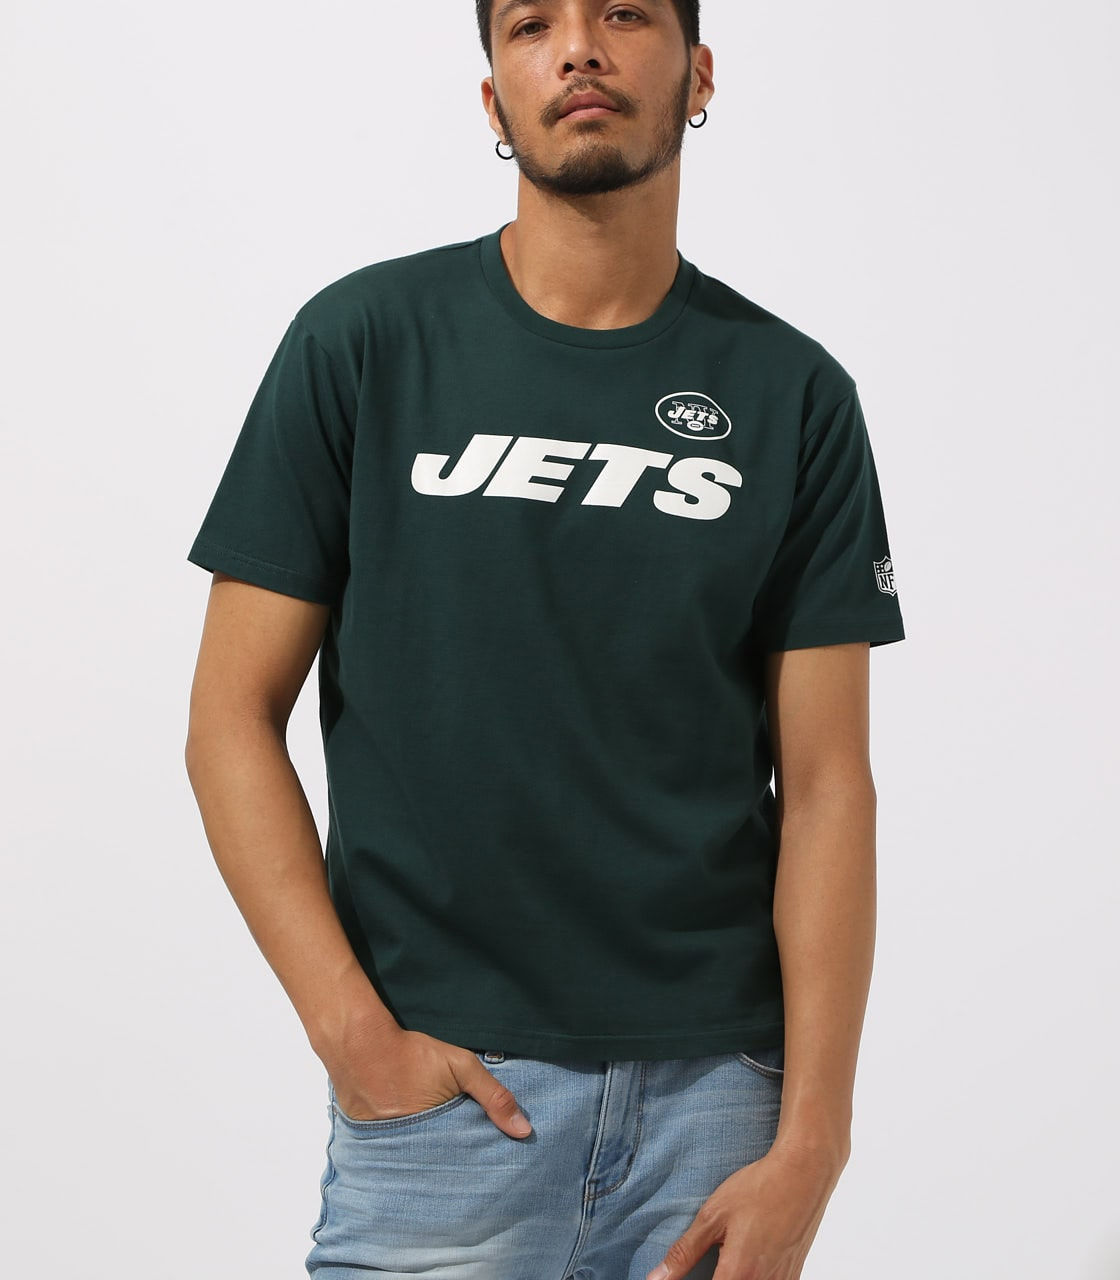 【AZUL BY MOUSSY】NFL JETS TEE 詳細画像 D/GRN 1